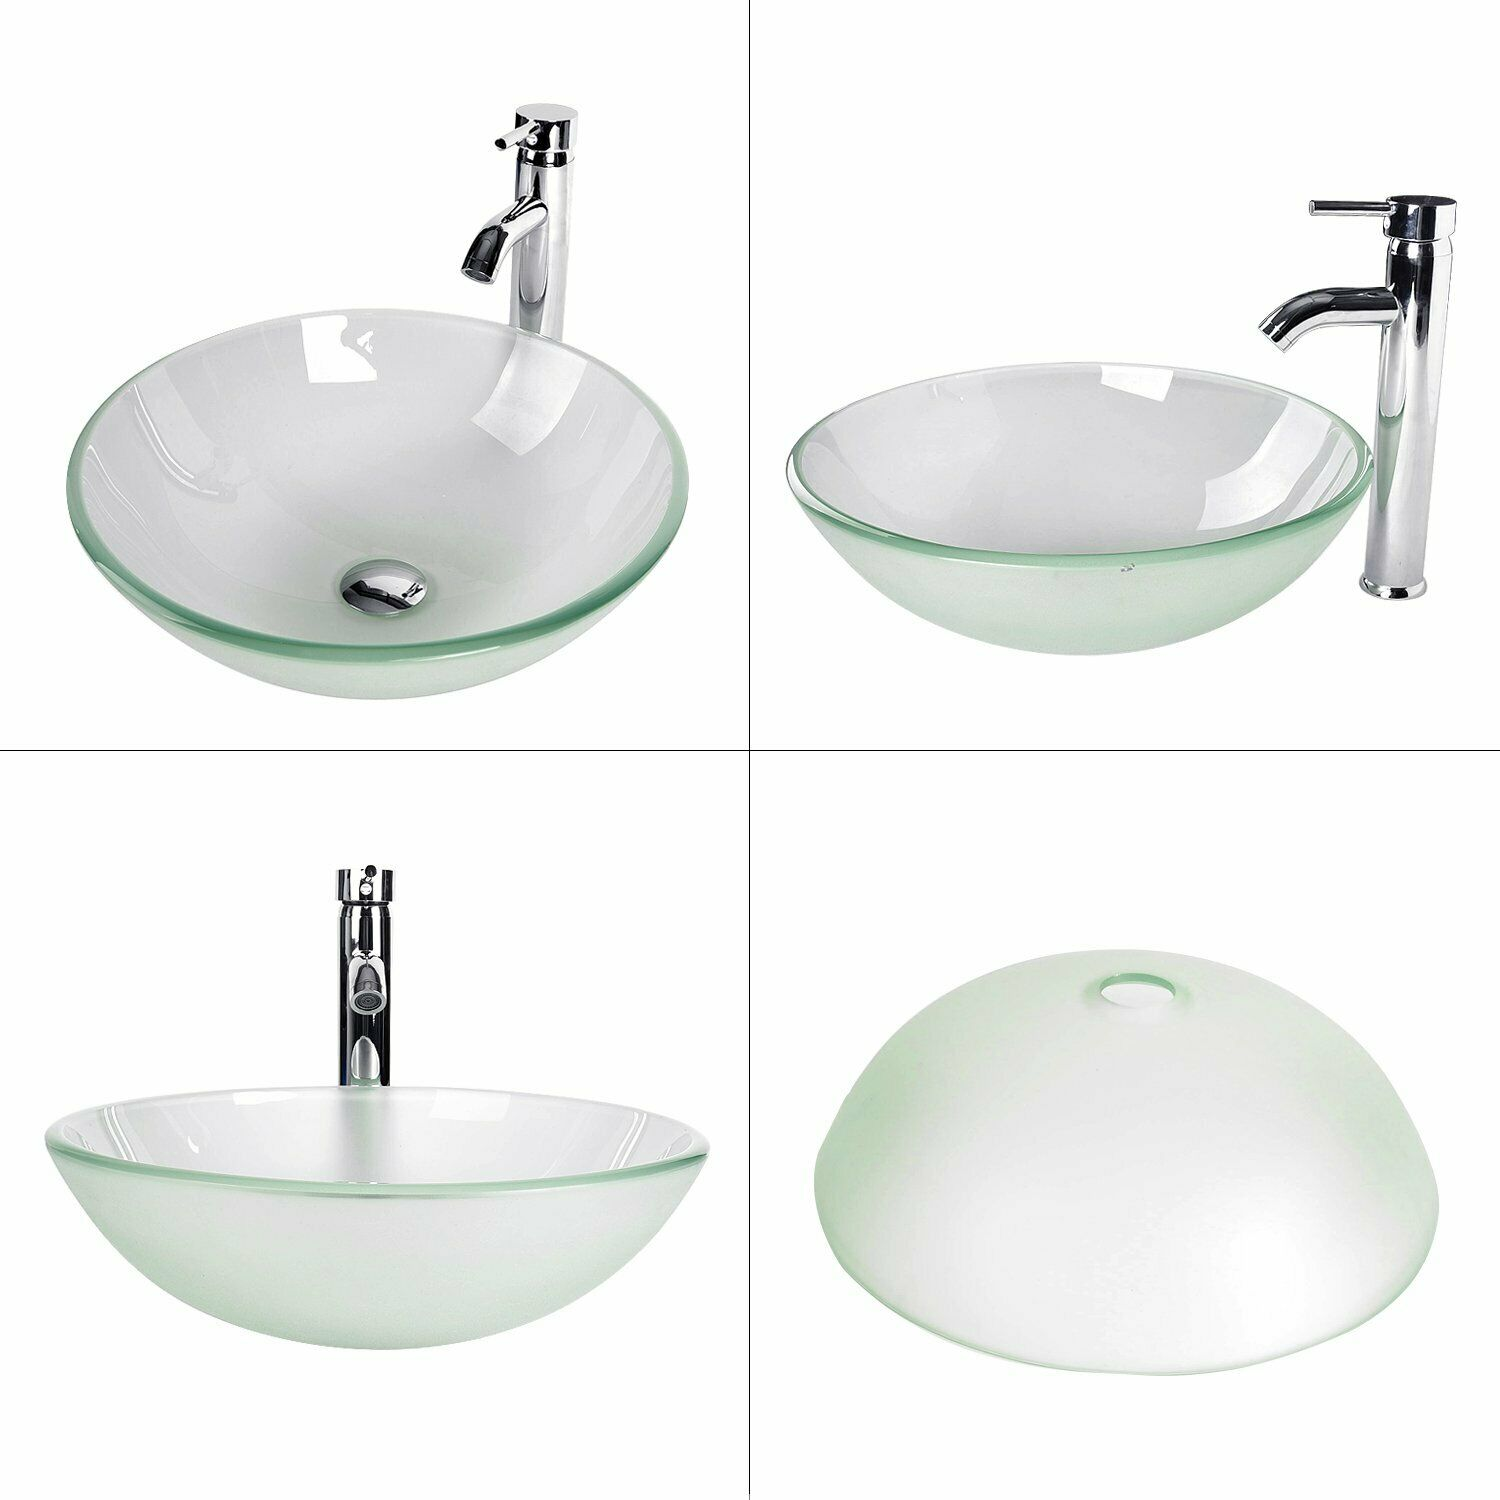 Elecwish Square Artistic Tempered Glass Vessel Sink Combo wi